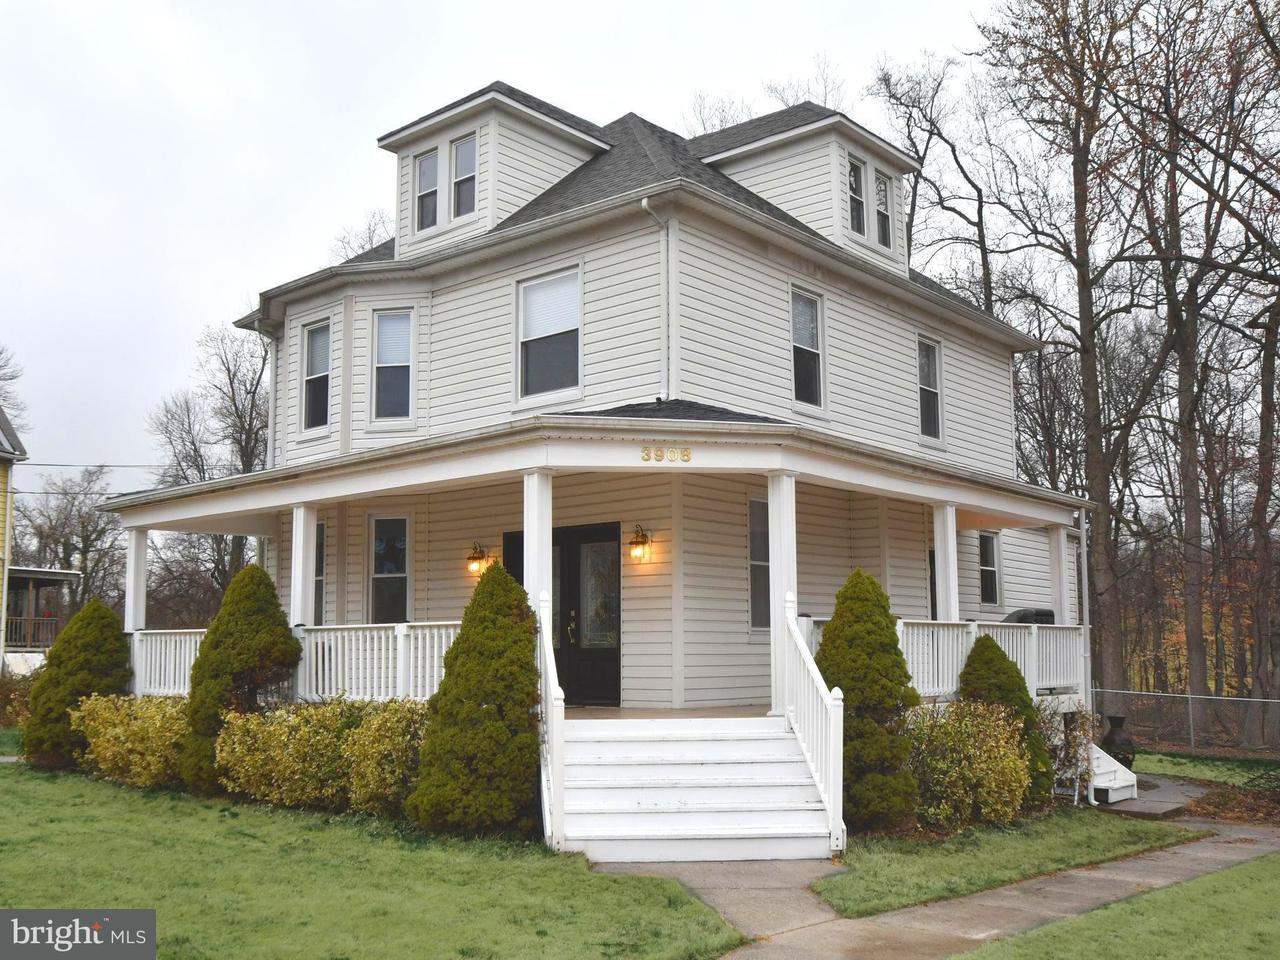 Single Family for Sale at 3908 Walnut Ave Baltimore, Maryland 21206 United States